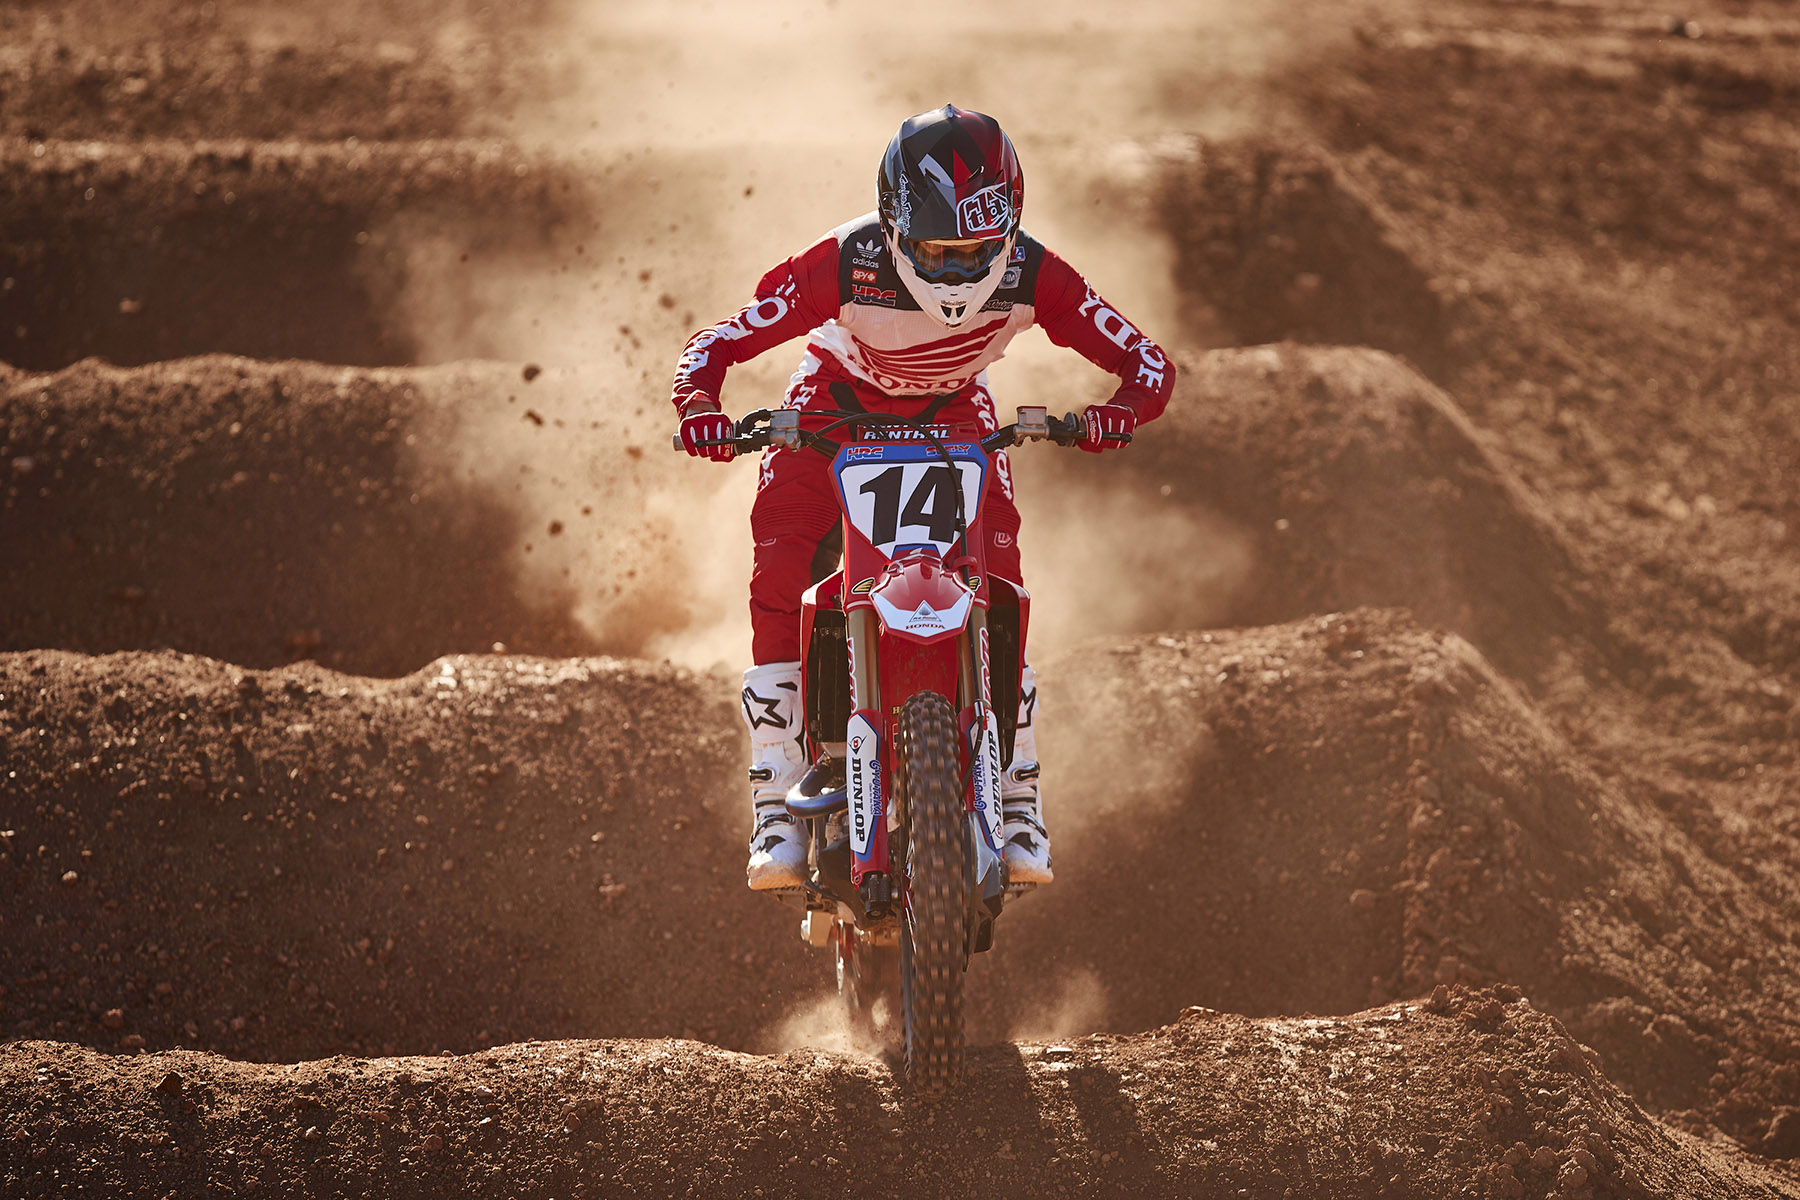 Retirement: Cole Seely